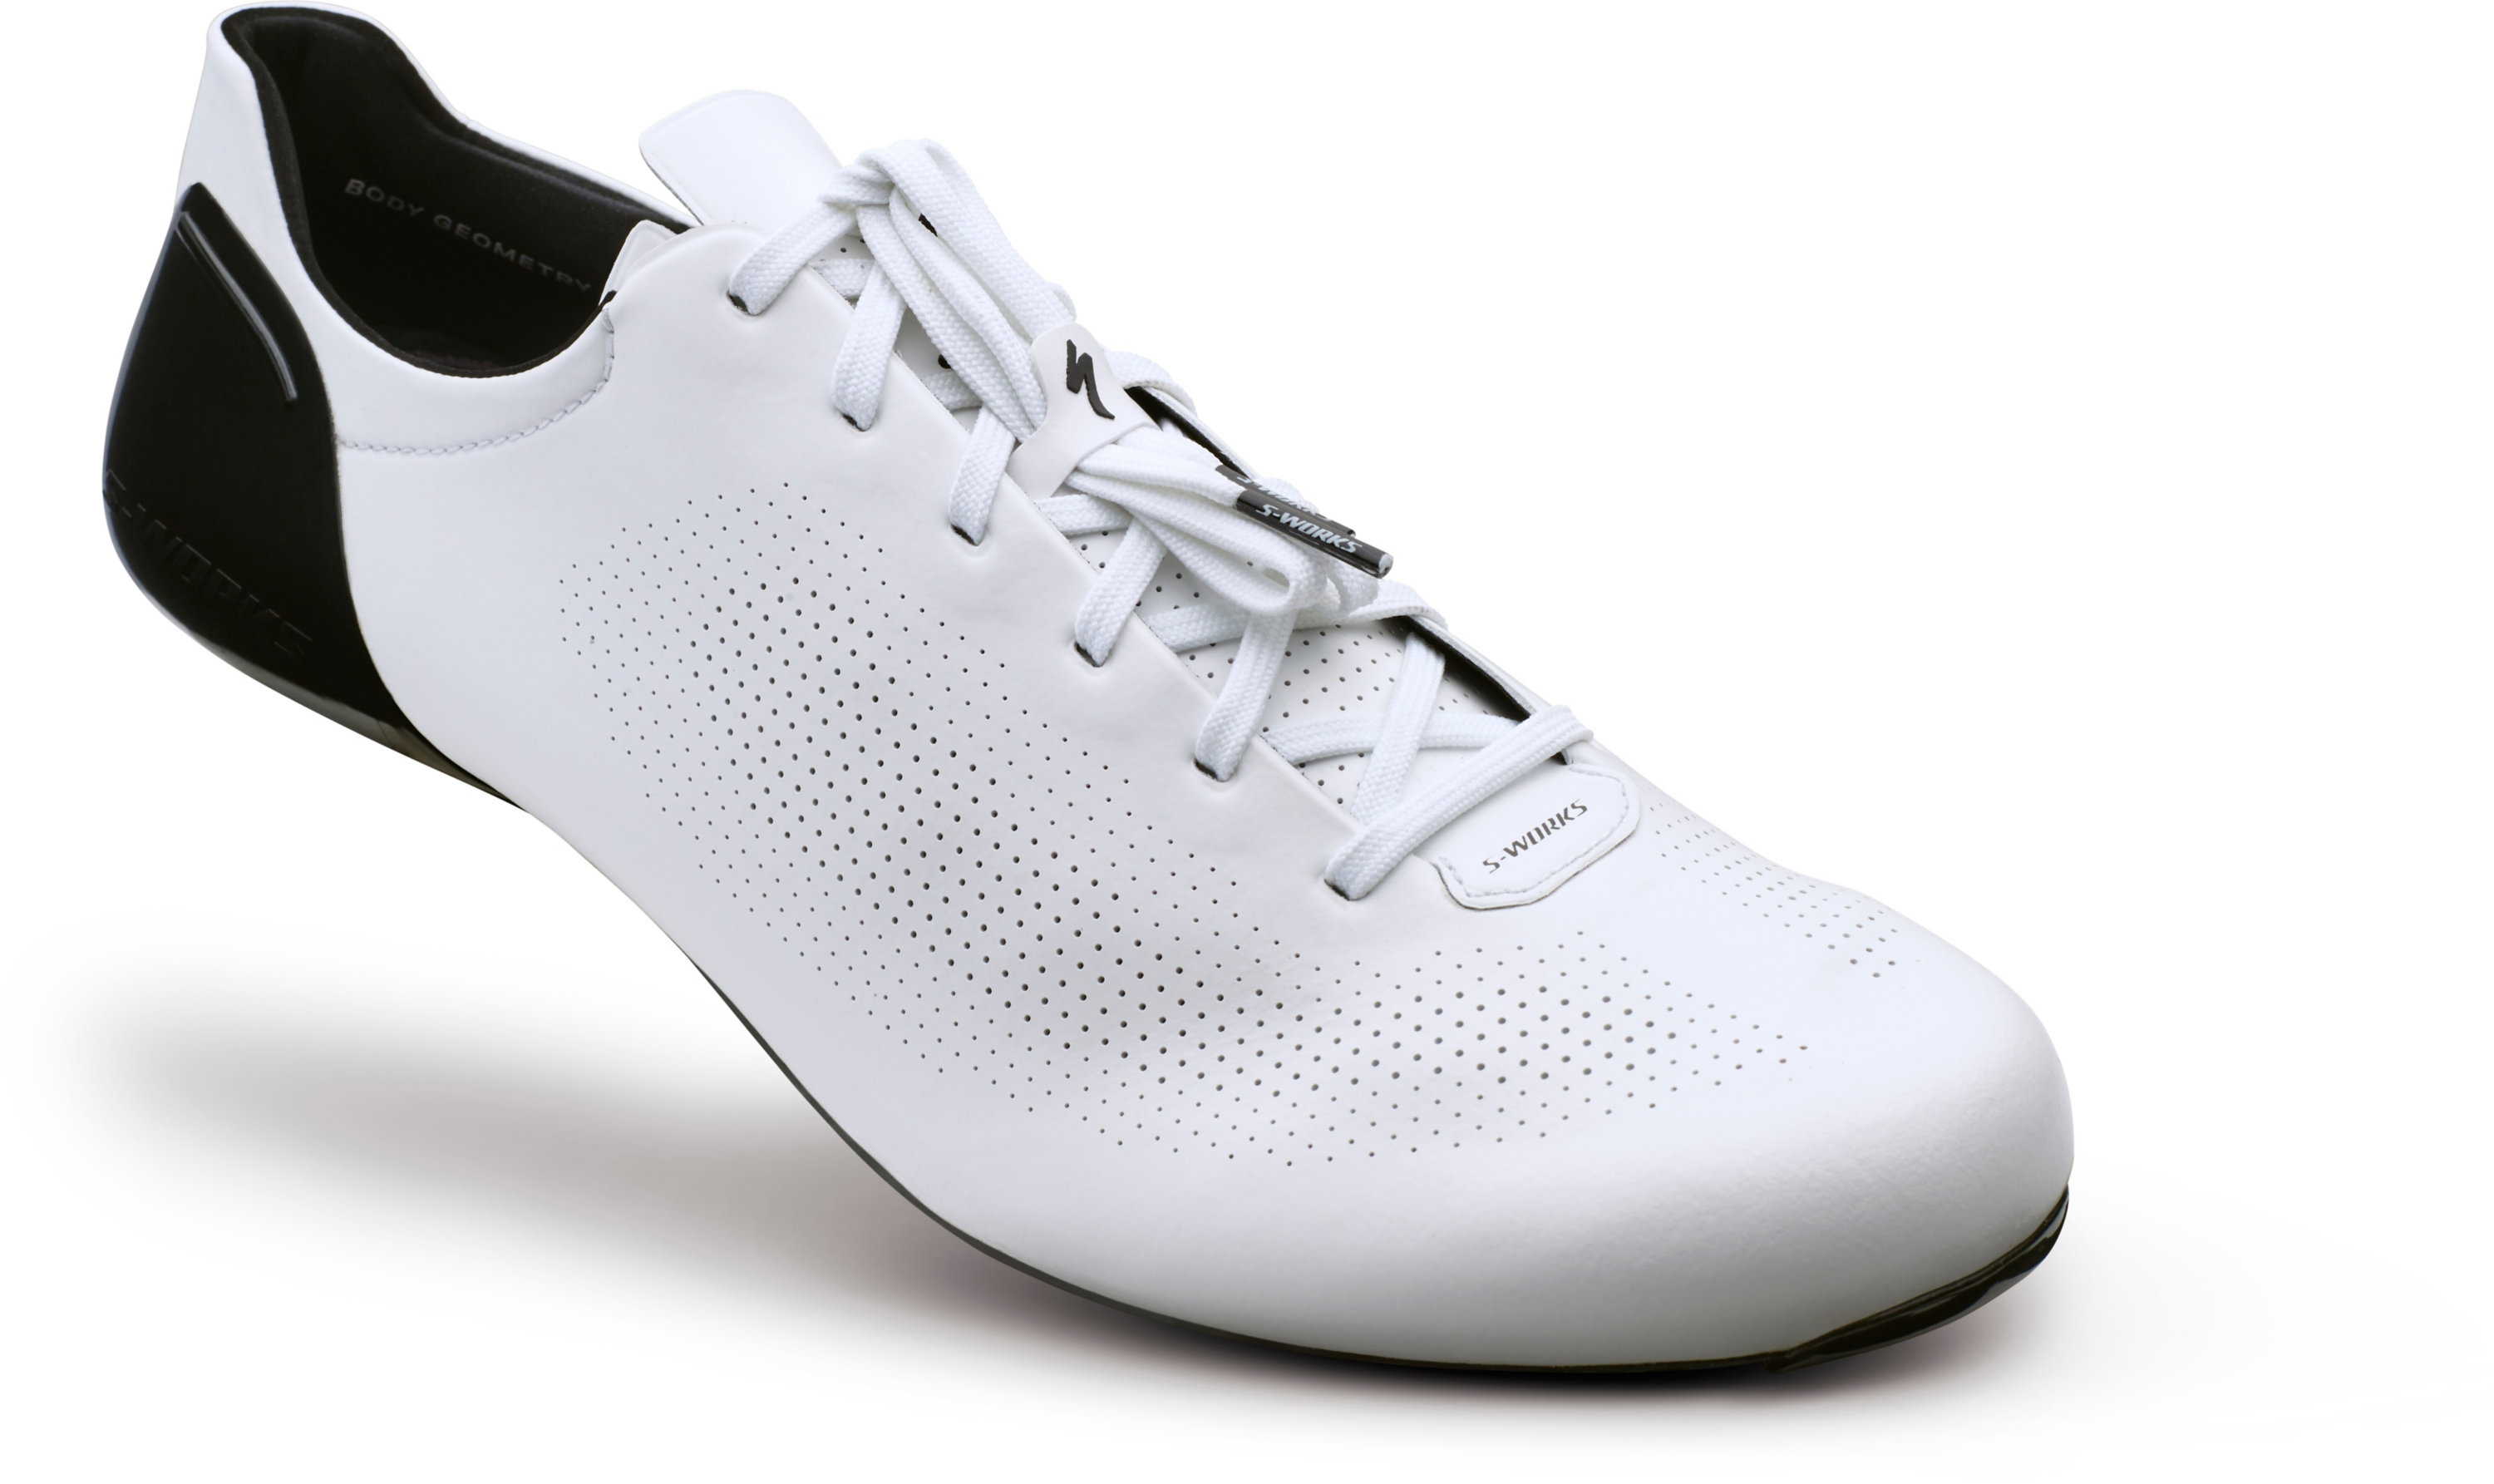 SPECIALIZED SW SUB6 RD SHOE WHT 40/7.5 - Bike Zone